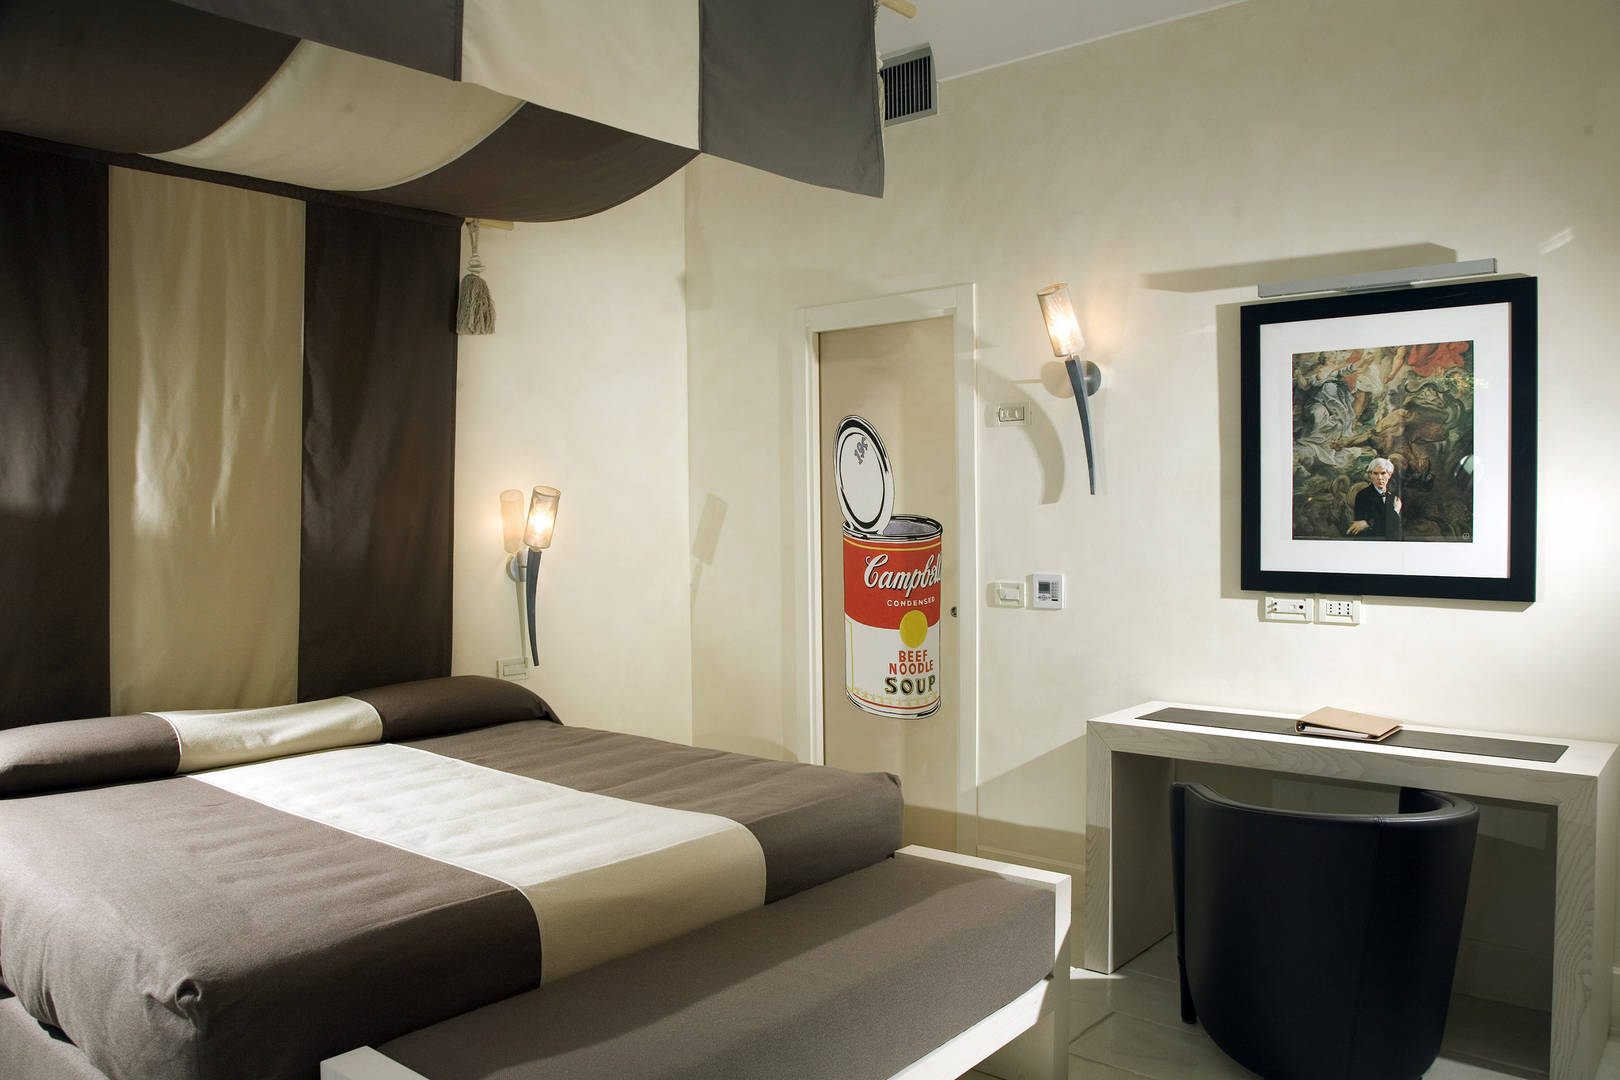 Capri Palace Jumeirah Suites wth Private Pool and Garden Warhol bedroom